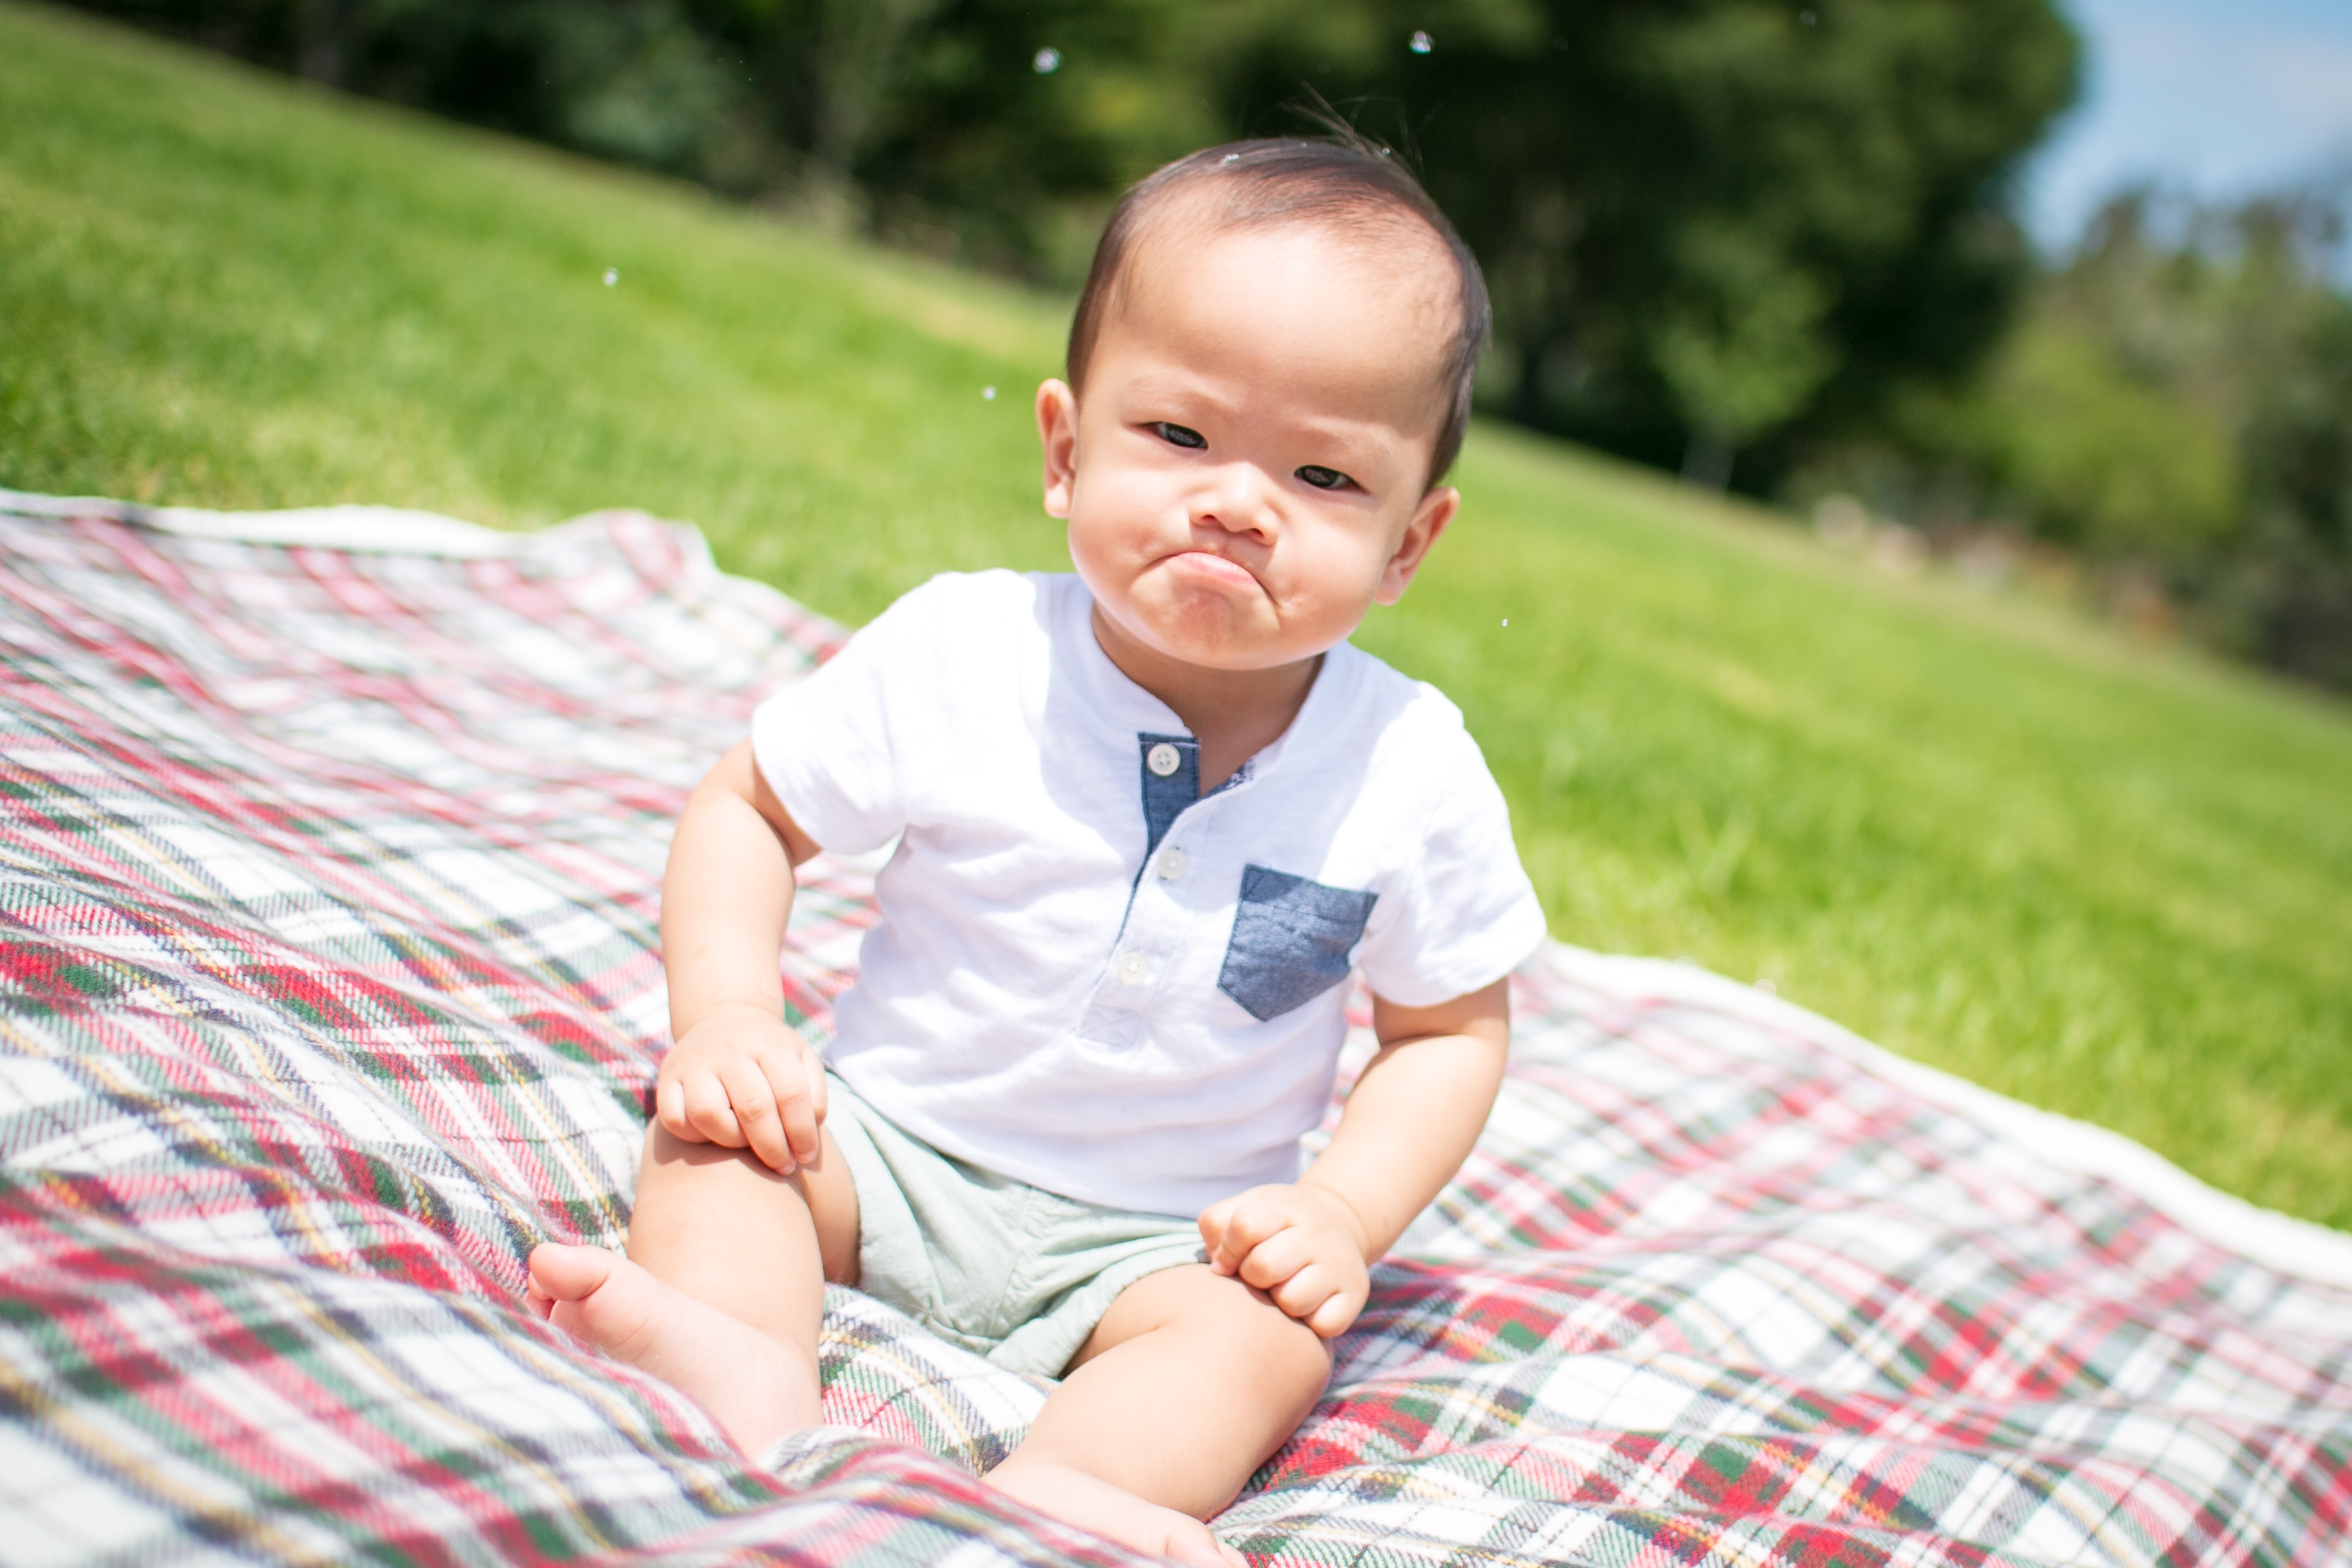 selective focus photography of grumpy face toddler sitting on plaid pad taken during daytime